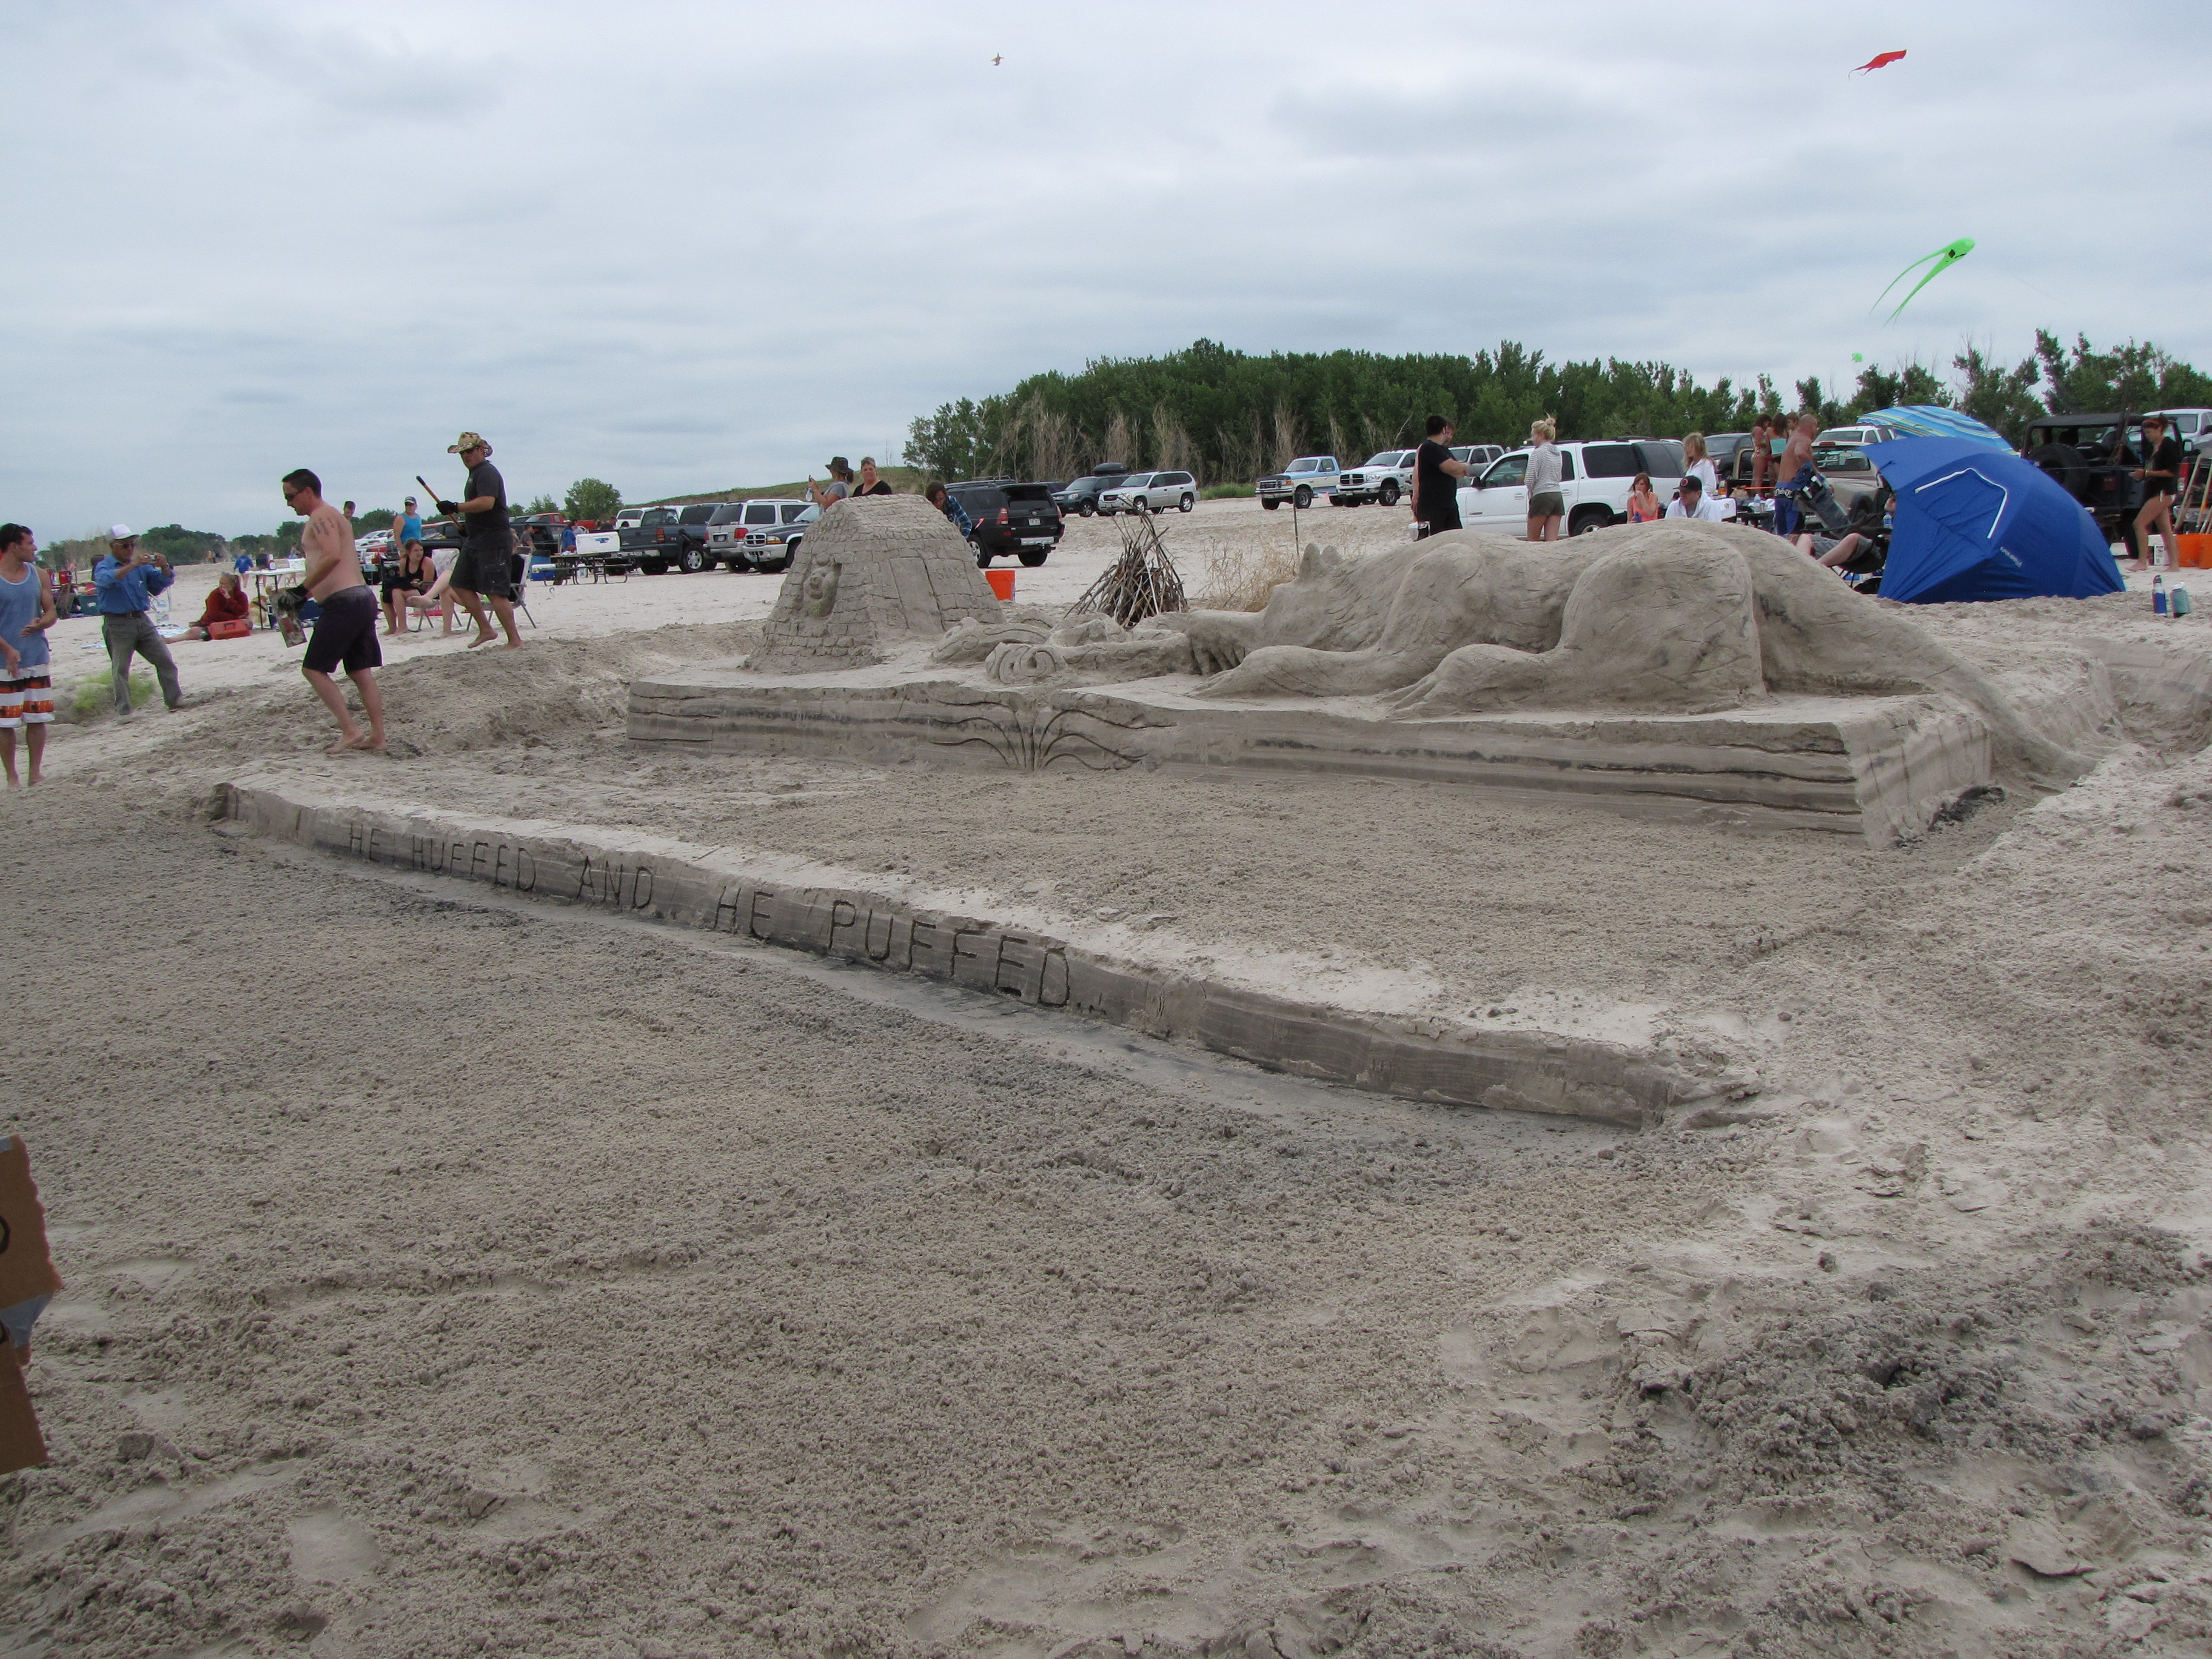 sandcastle competition while camping on lake mcConaughy